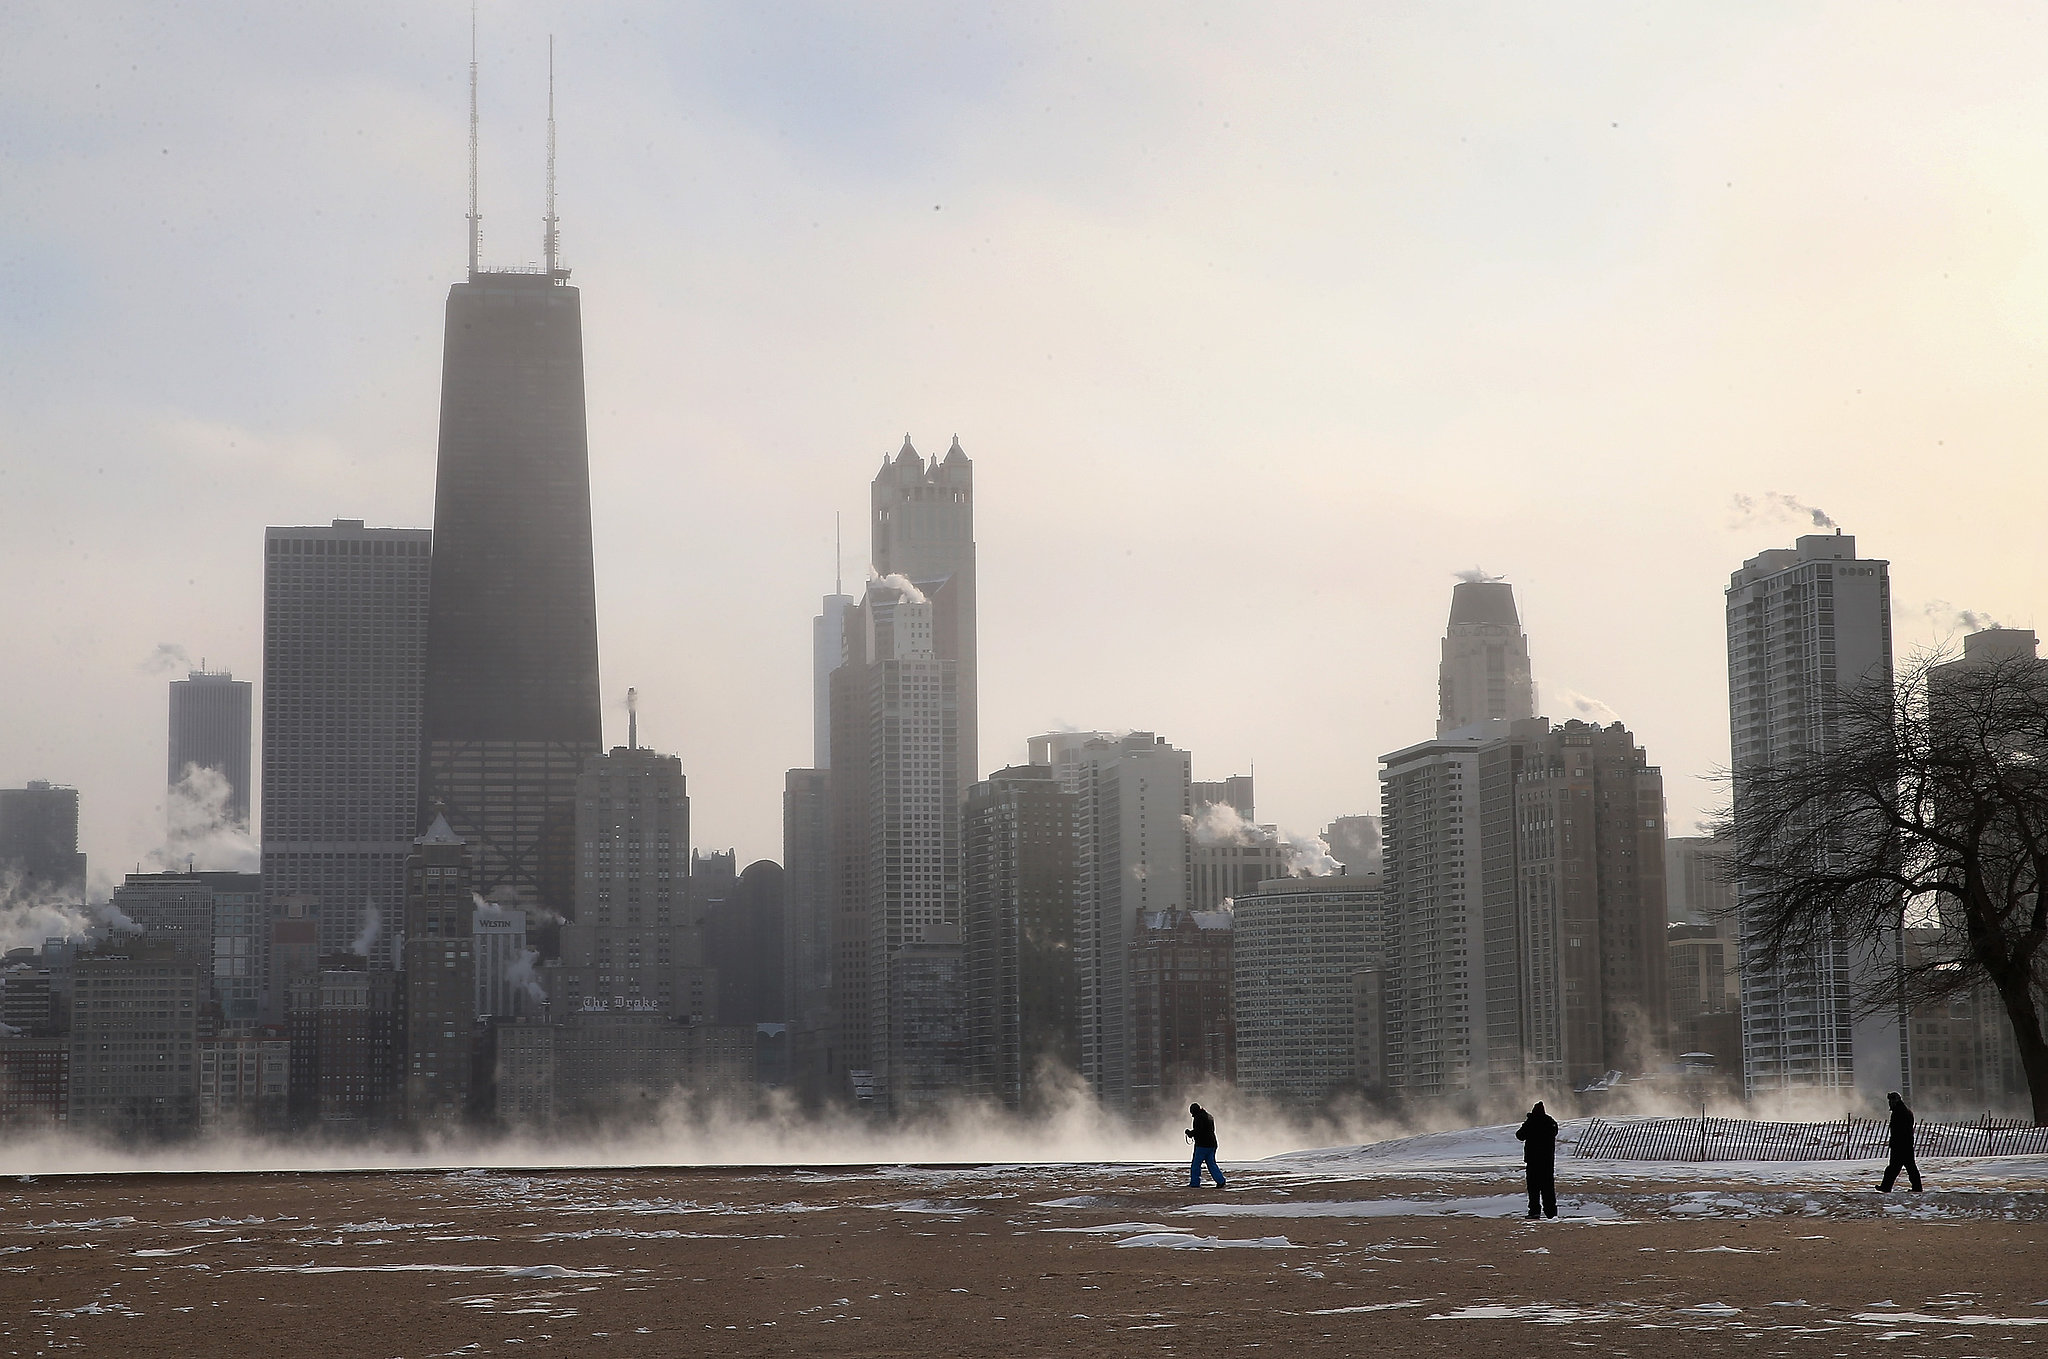 Mist rose up from the ground with subzero temperatures hitting the city.